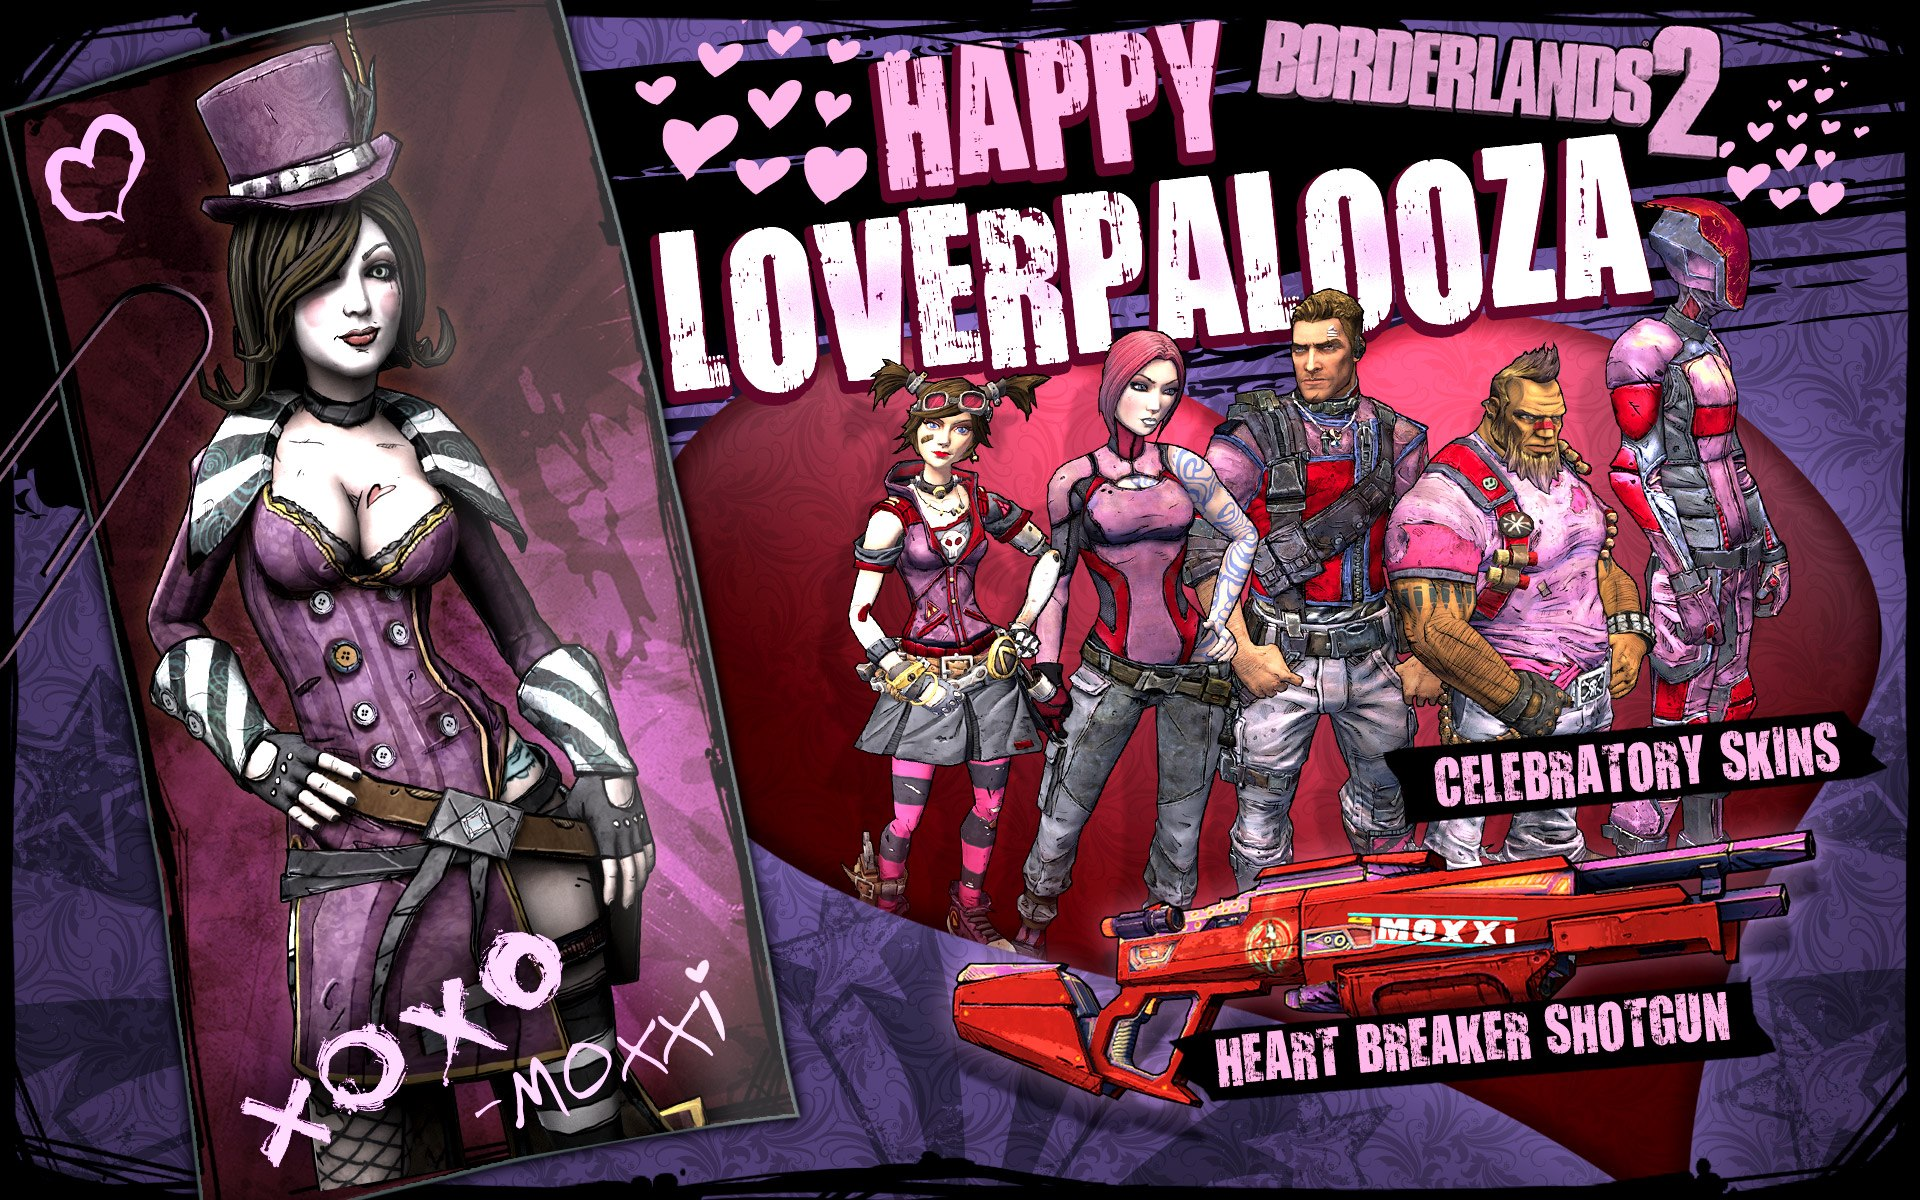 NA BORDERLANDS2 HEARTBREAKER